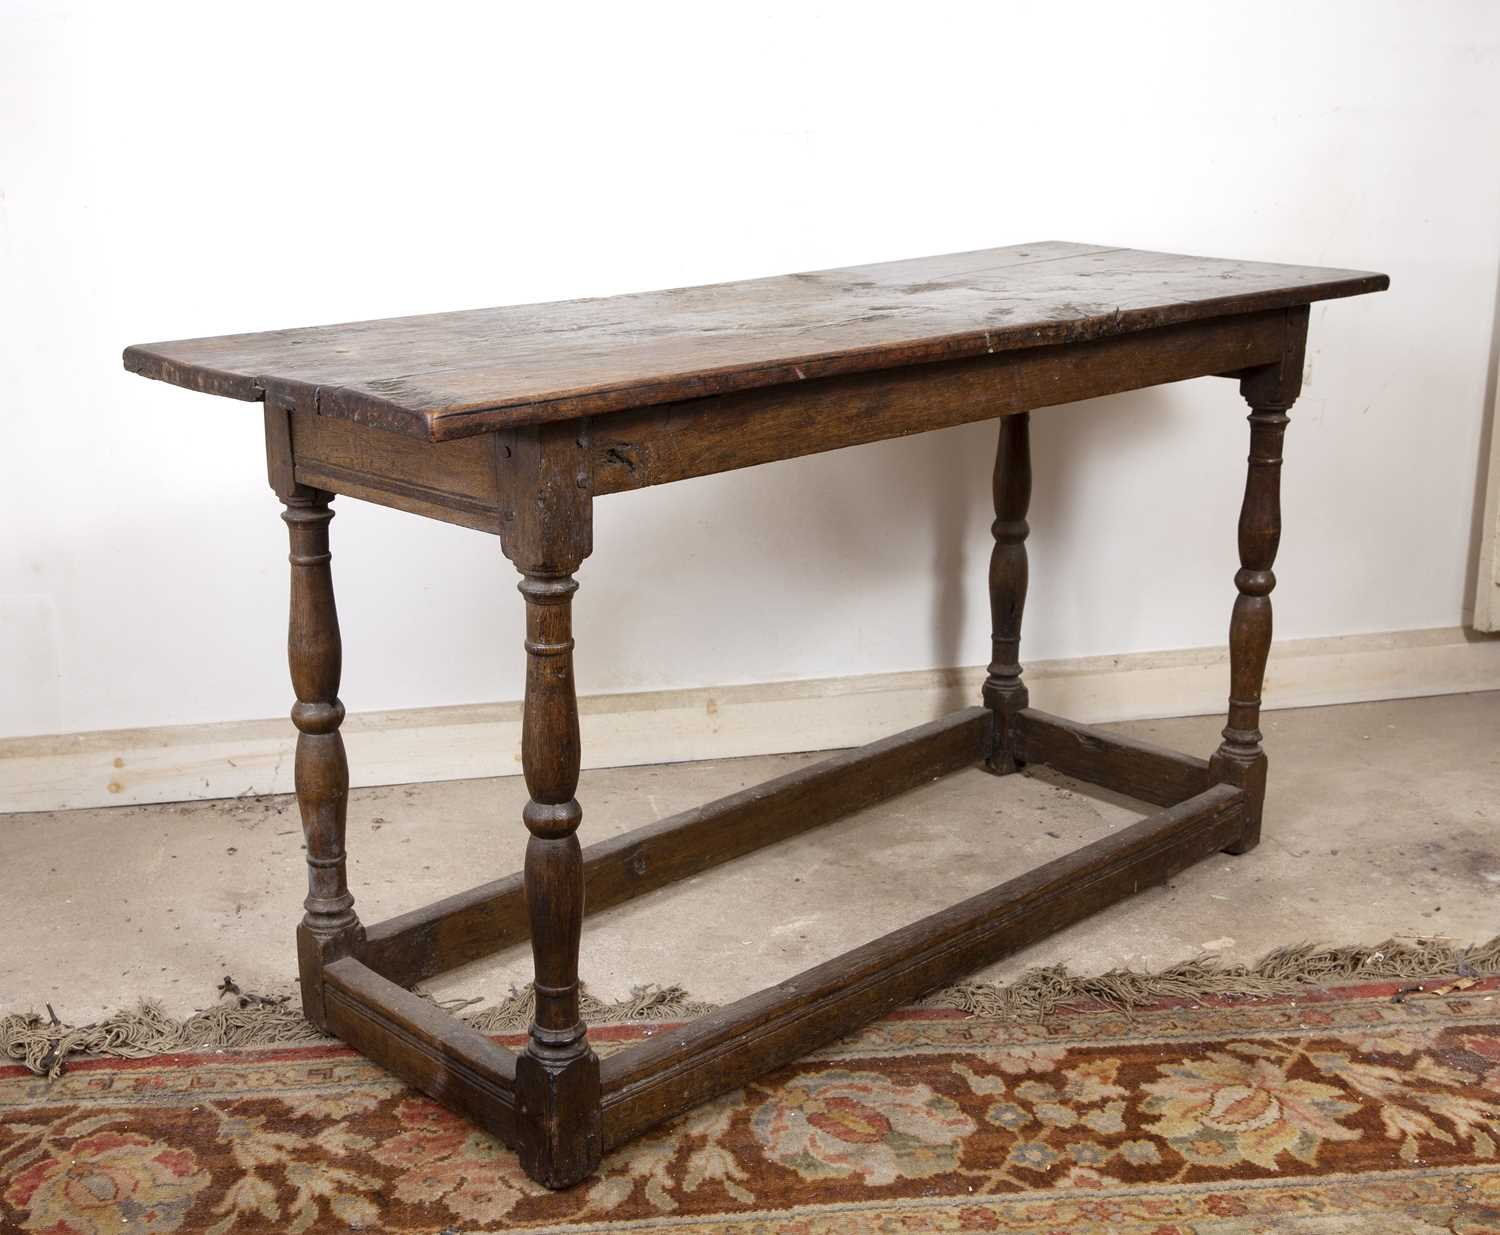 An 18th century oak rectangular side table, on baluster turned legs united by stretchers, 125cm - Image 3 of 4